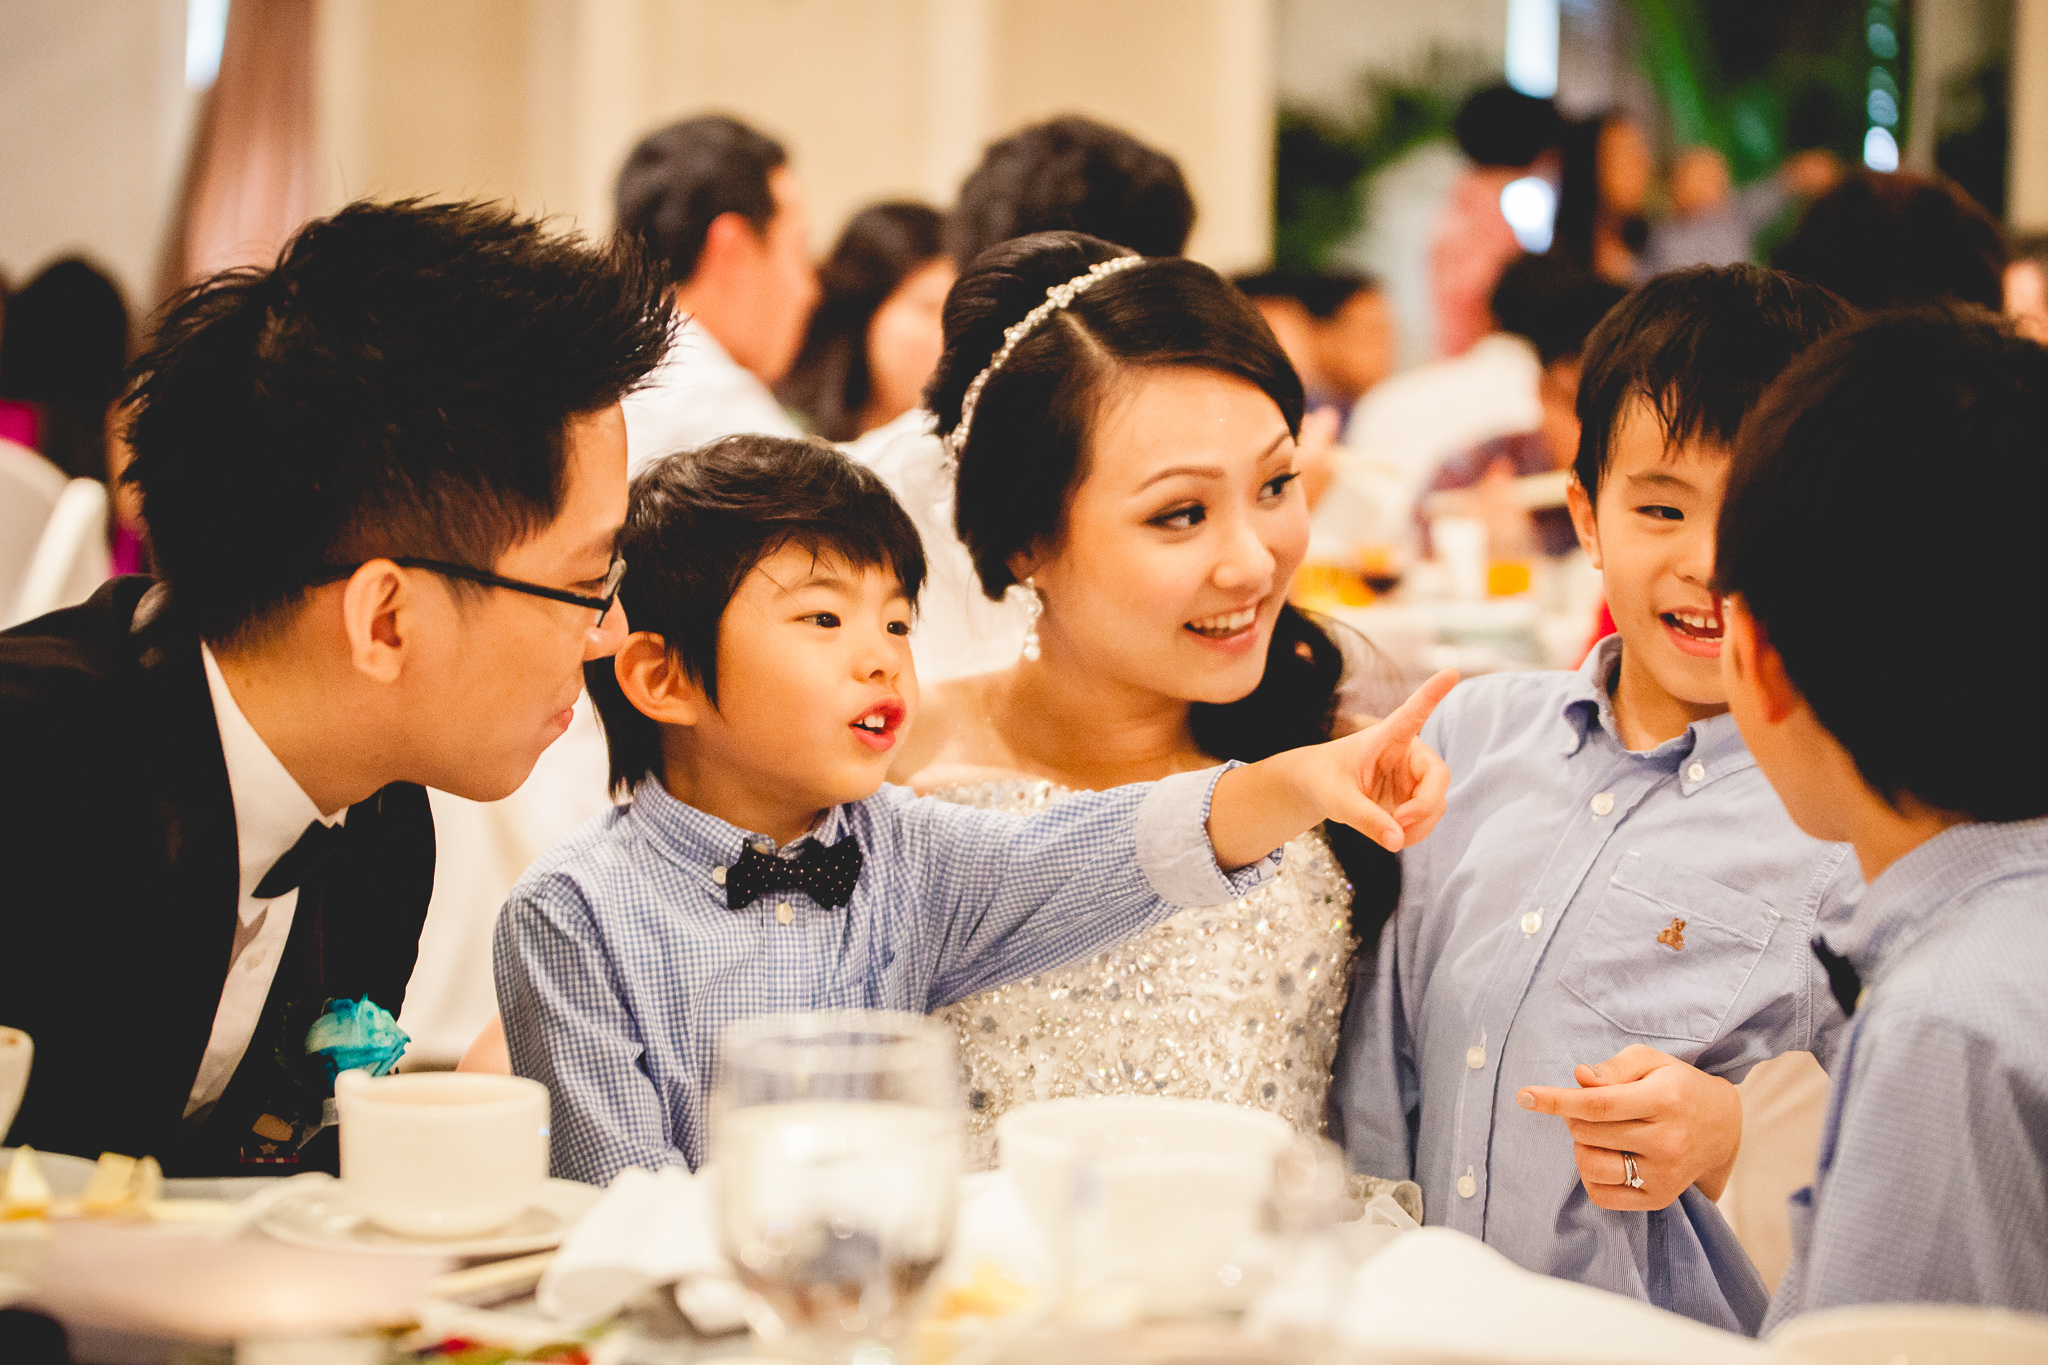 Yunfeng & Natalie Wedding Day Selects (Resized for sharing) -112.jpg